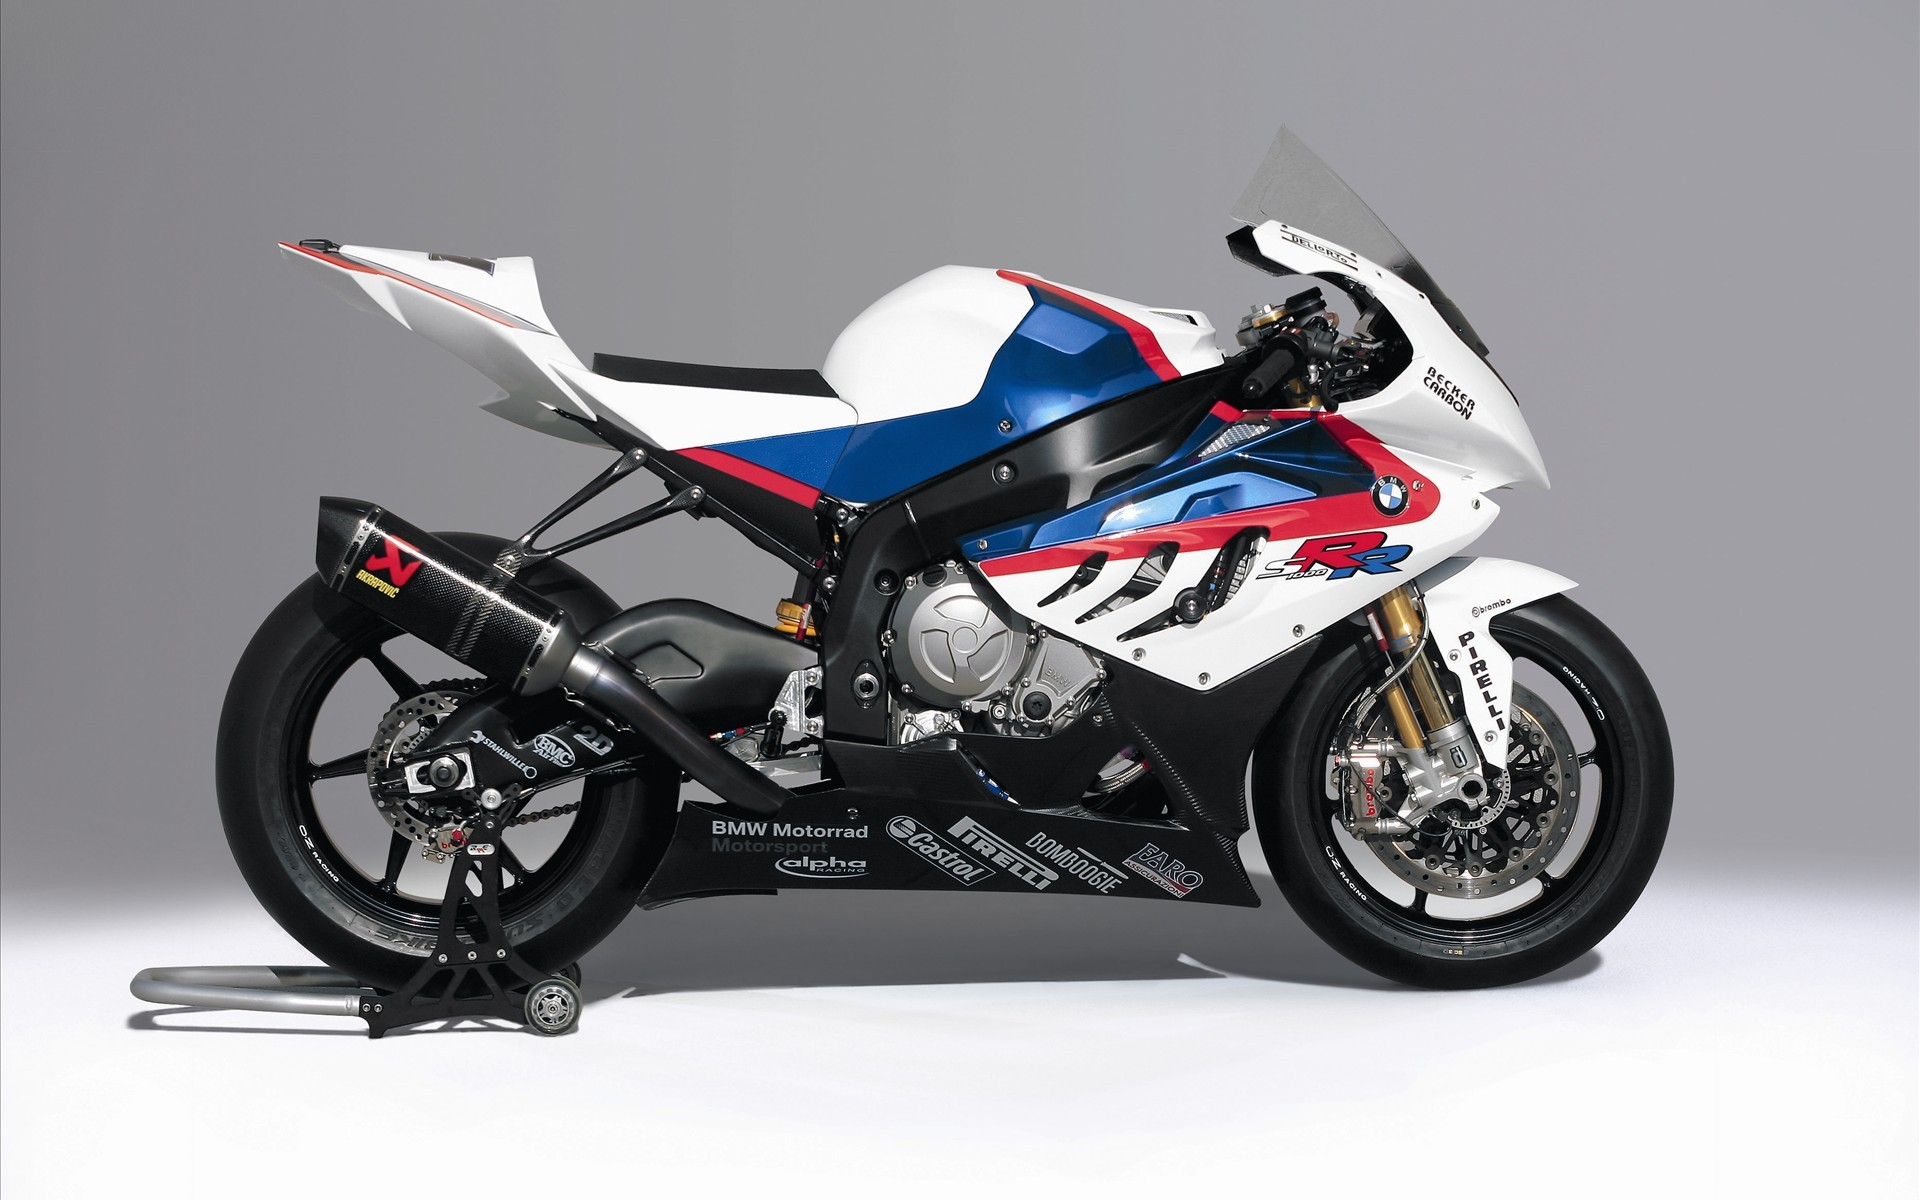 Wallpaper Super Cars Download Bmw S 1000 Rr Superbike World Championship Wallpapers Hd